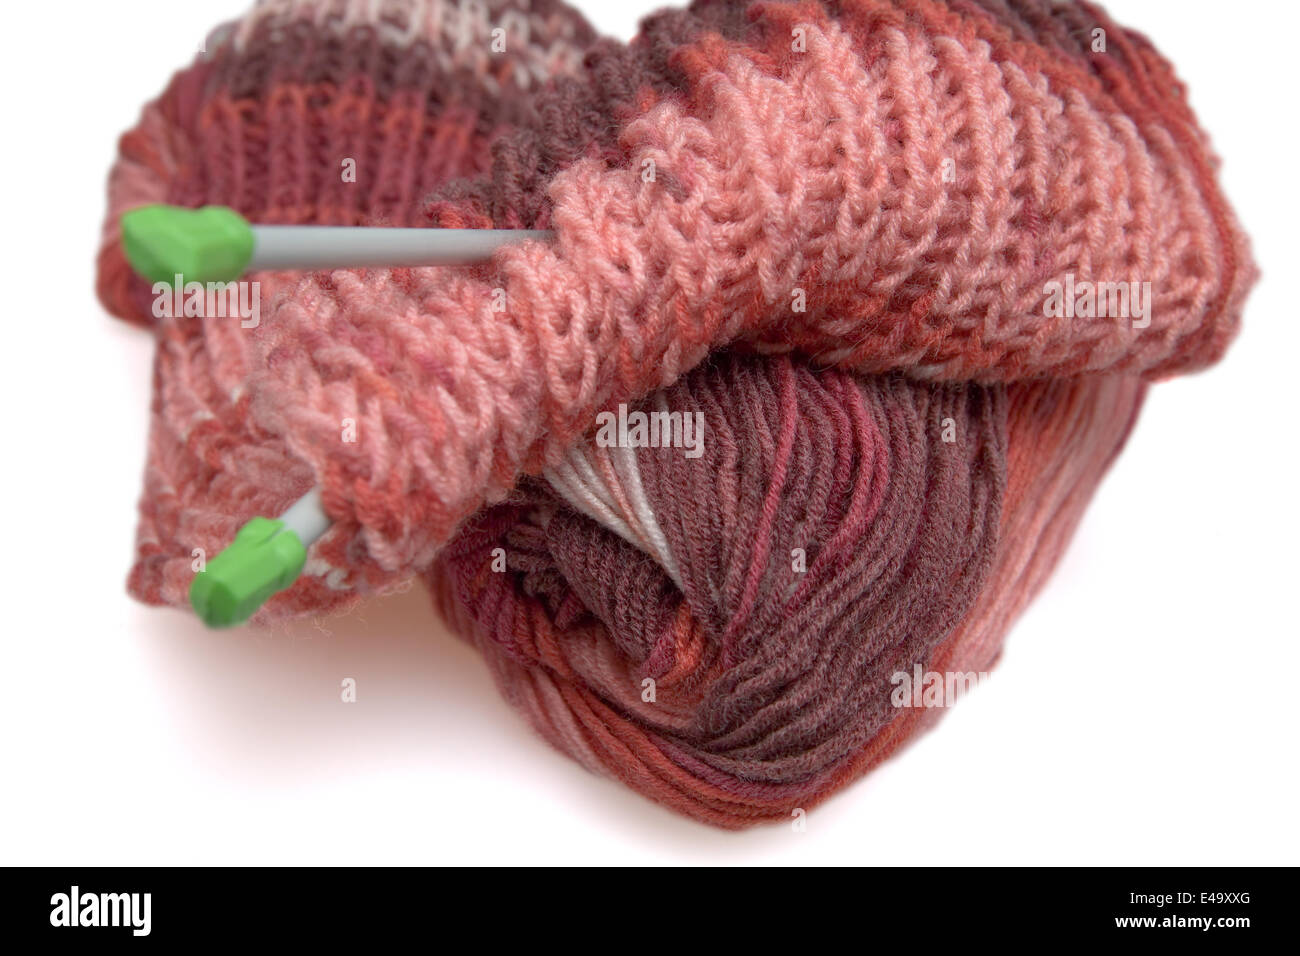 Incomplete a knitted scarf of claret color - Stock Image